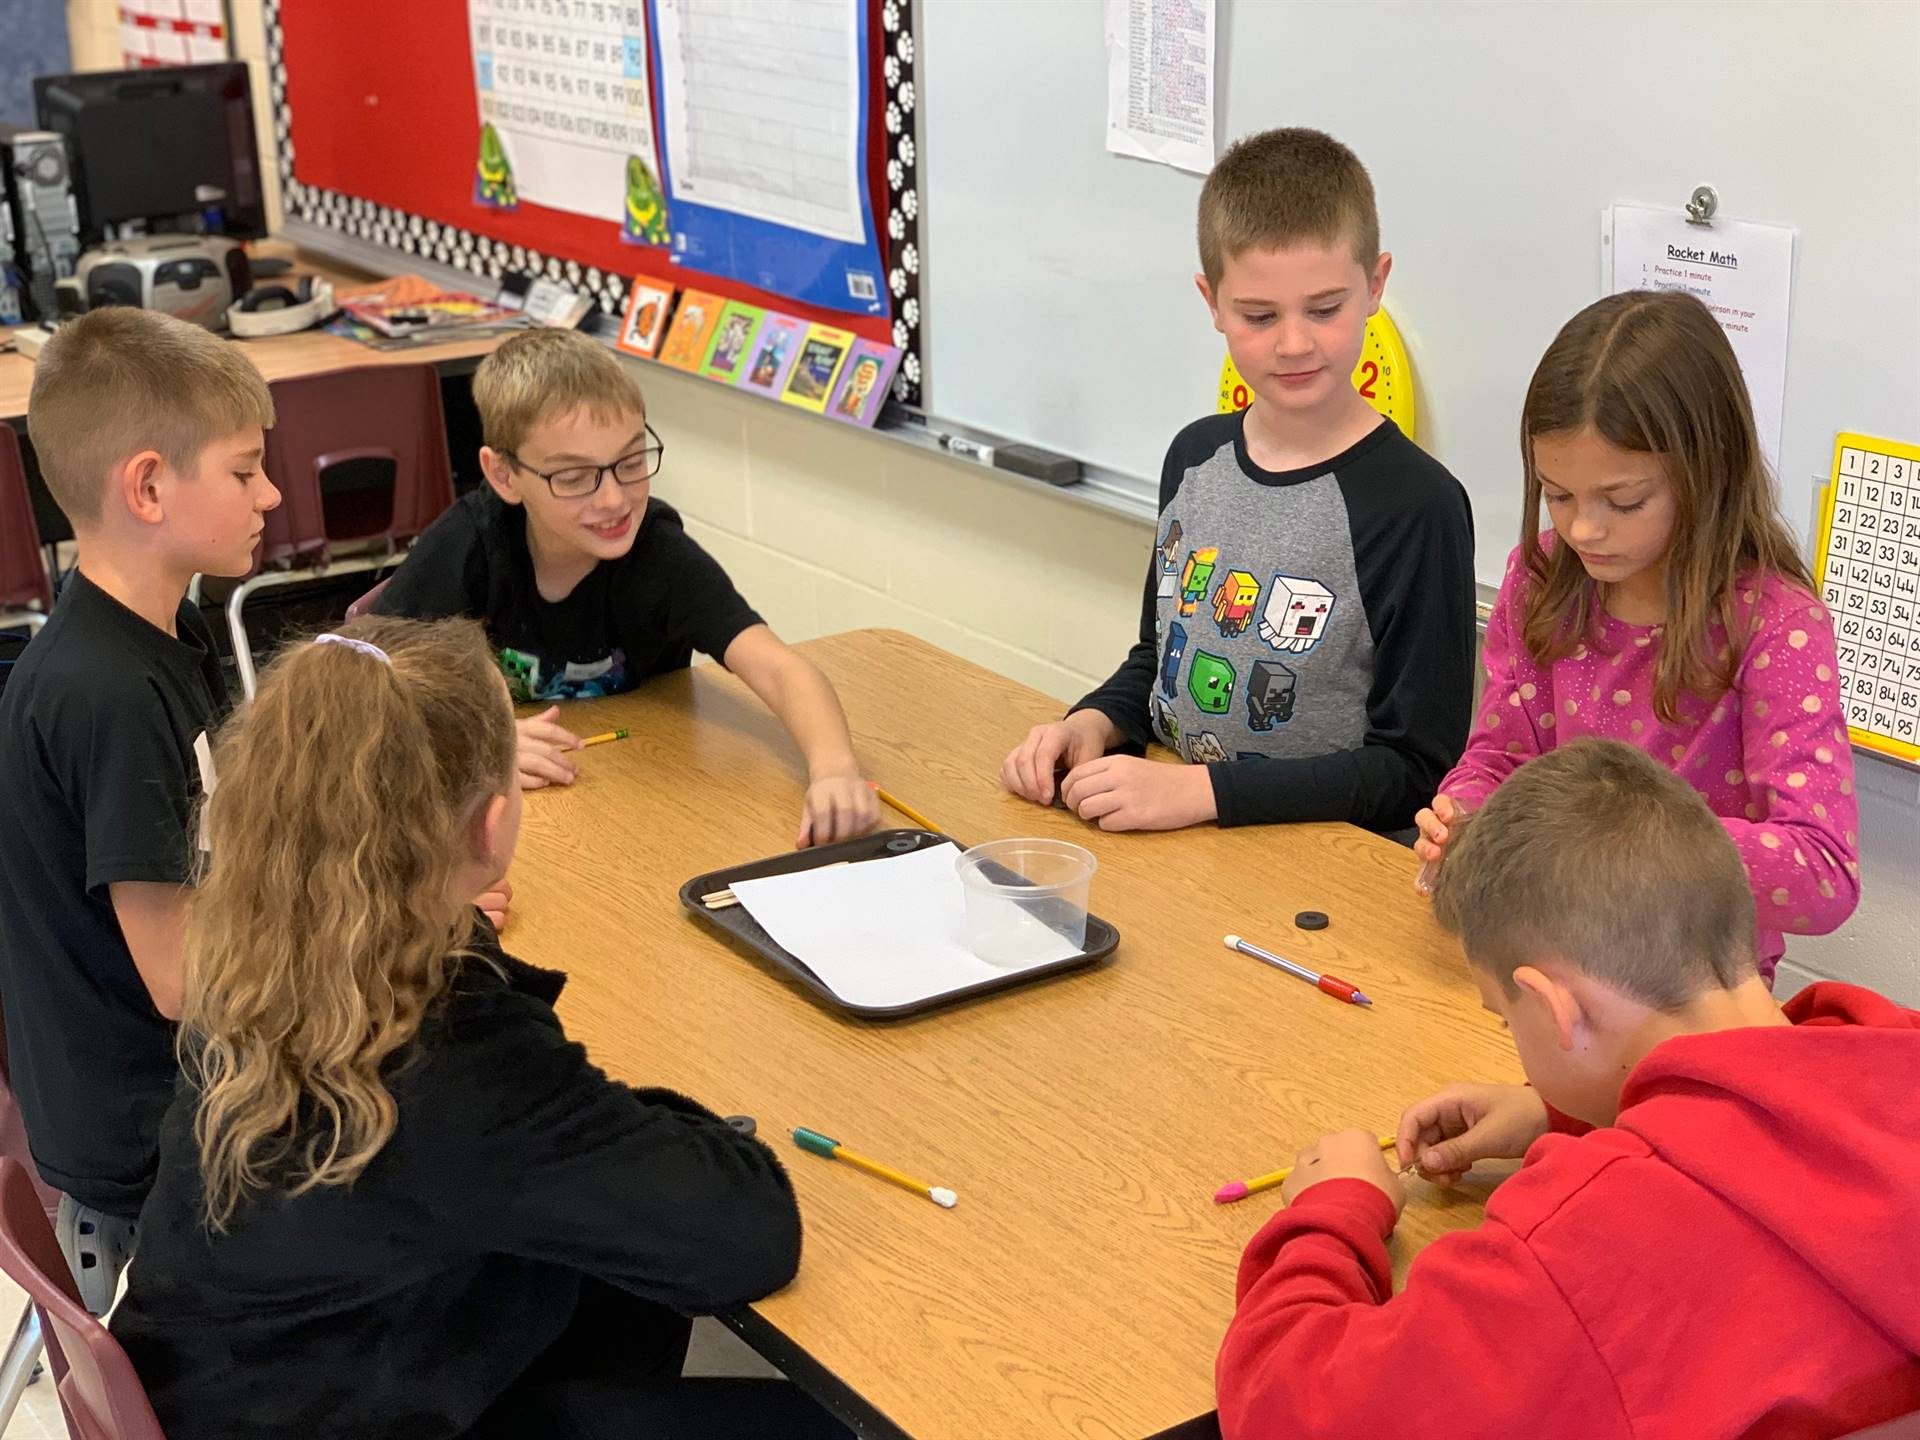 3rd graders explore magnetism in science